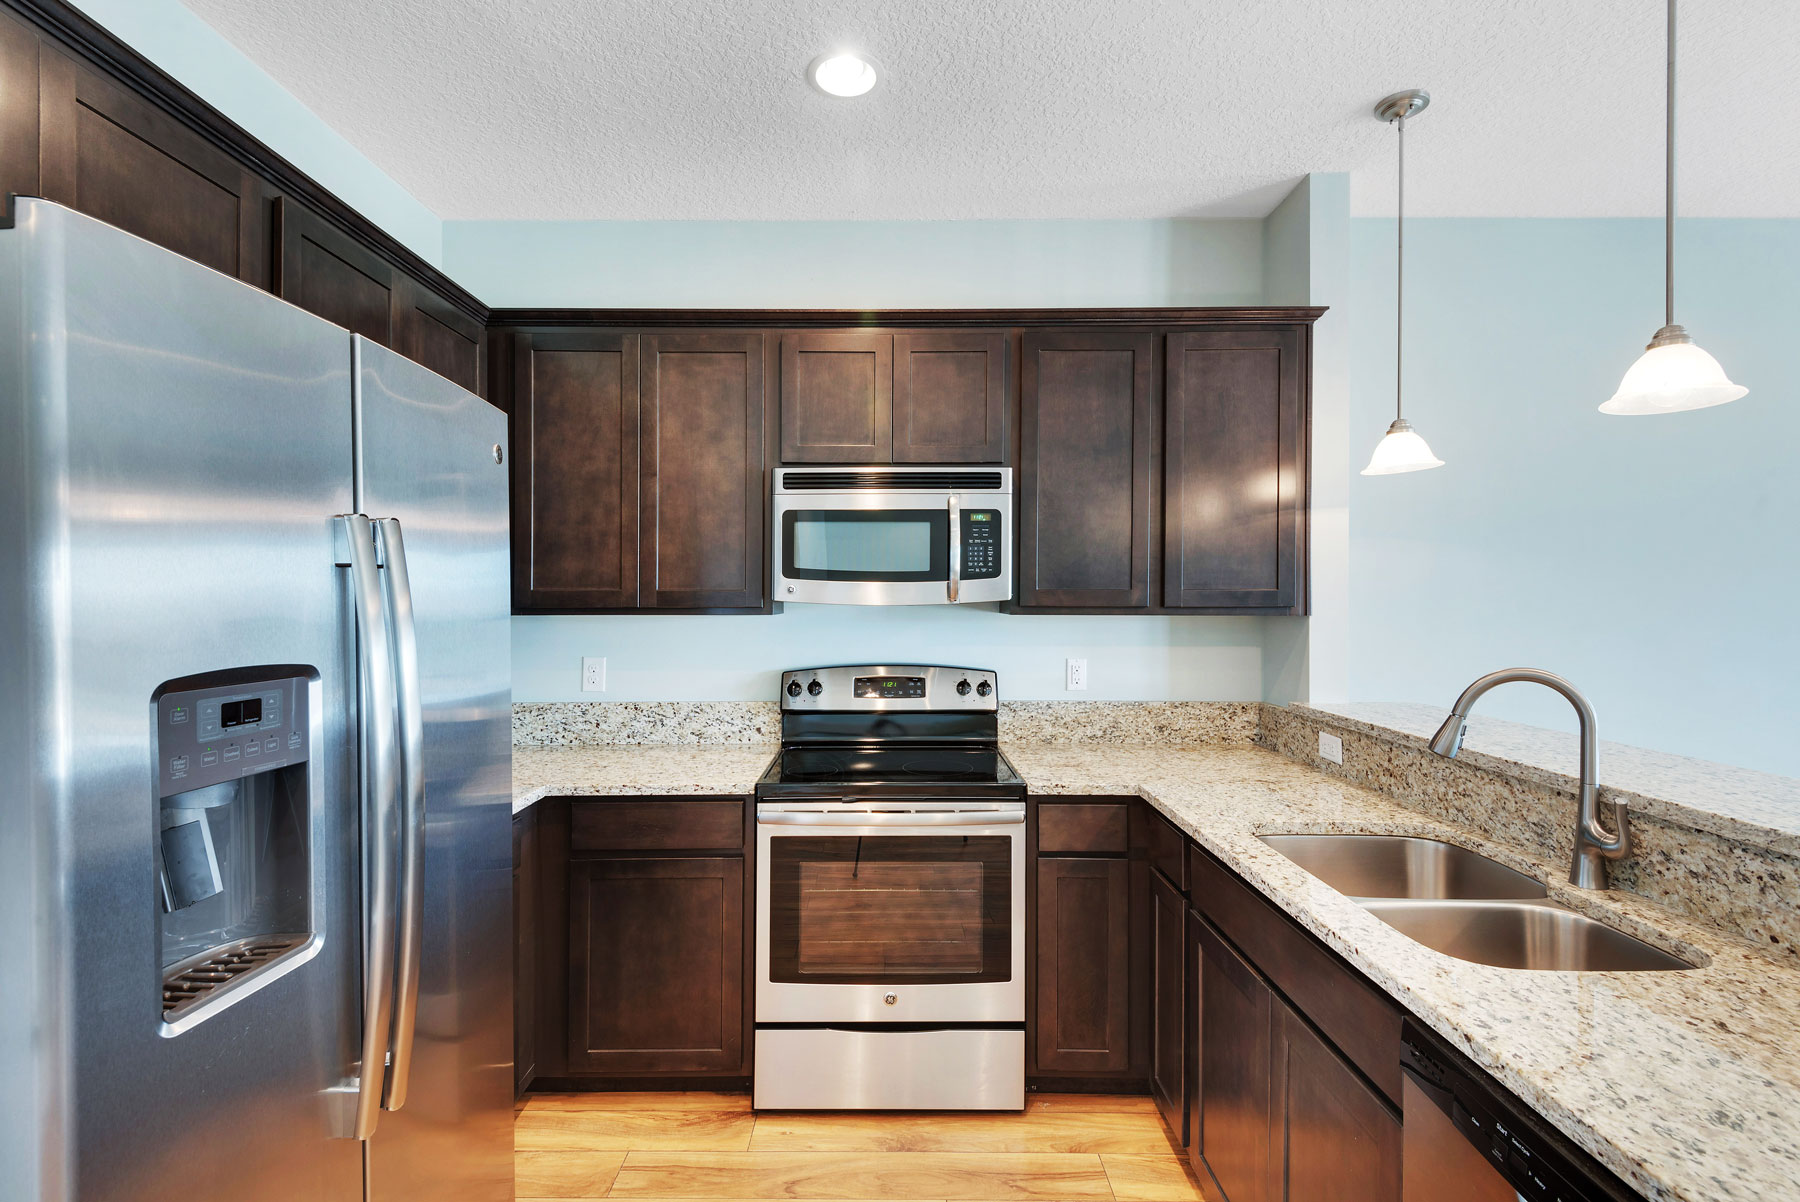 Miller's Landing at Lake Powell will offer stainless steel appliances and granite countertops.